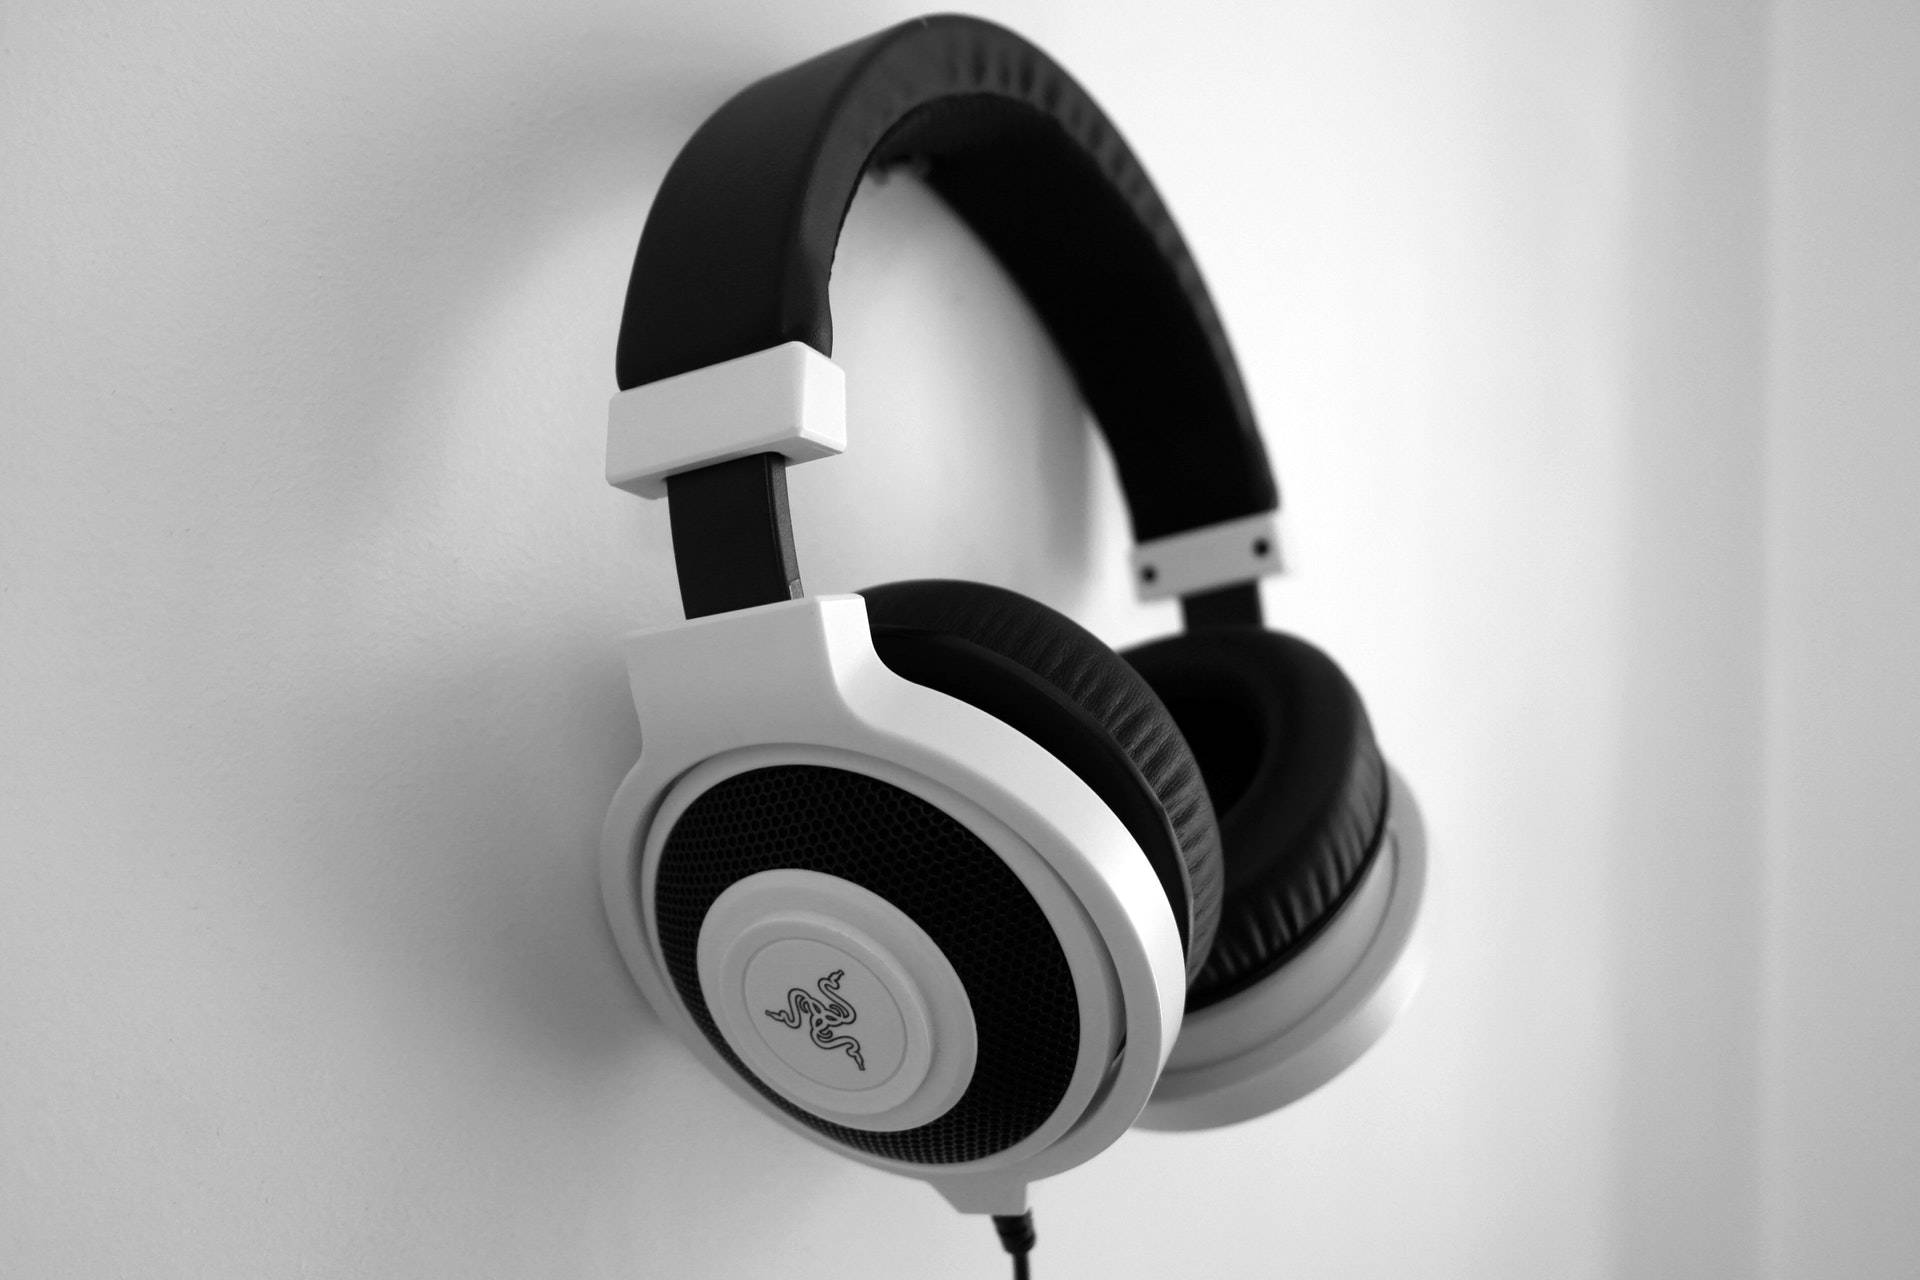 Best Gaming Headset 2019 - PC, Xbox, PS4 & Mobile Headsets